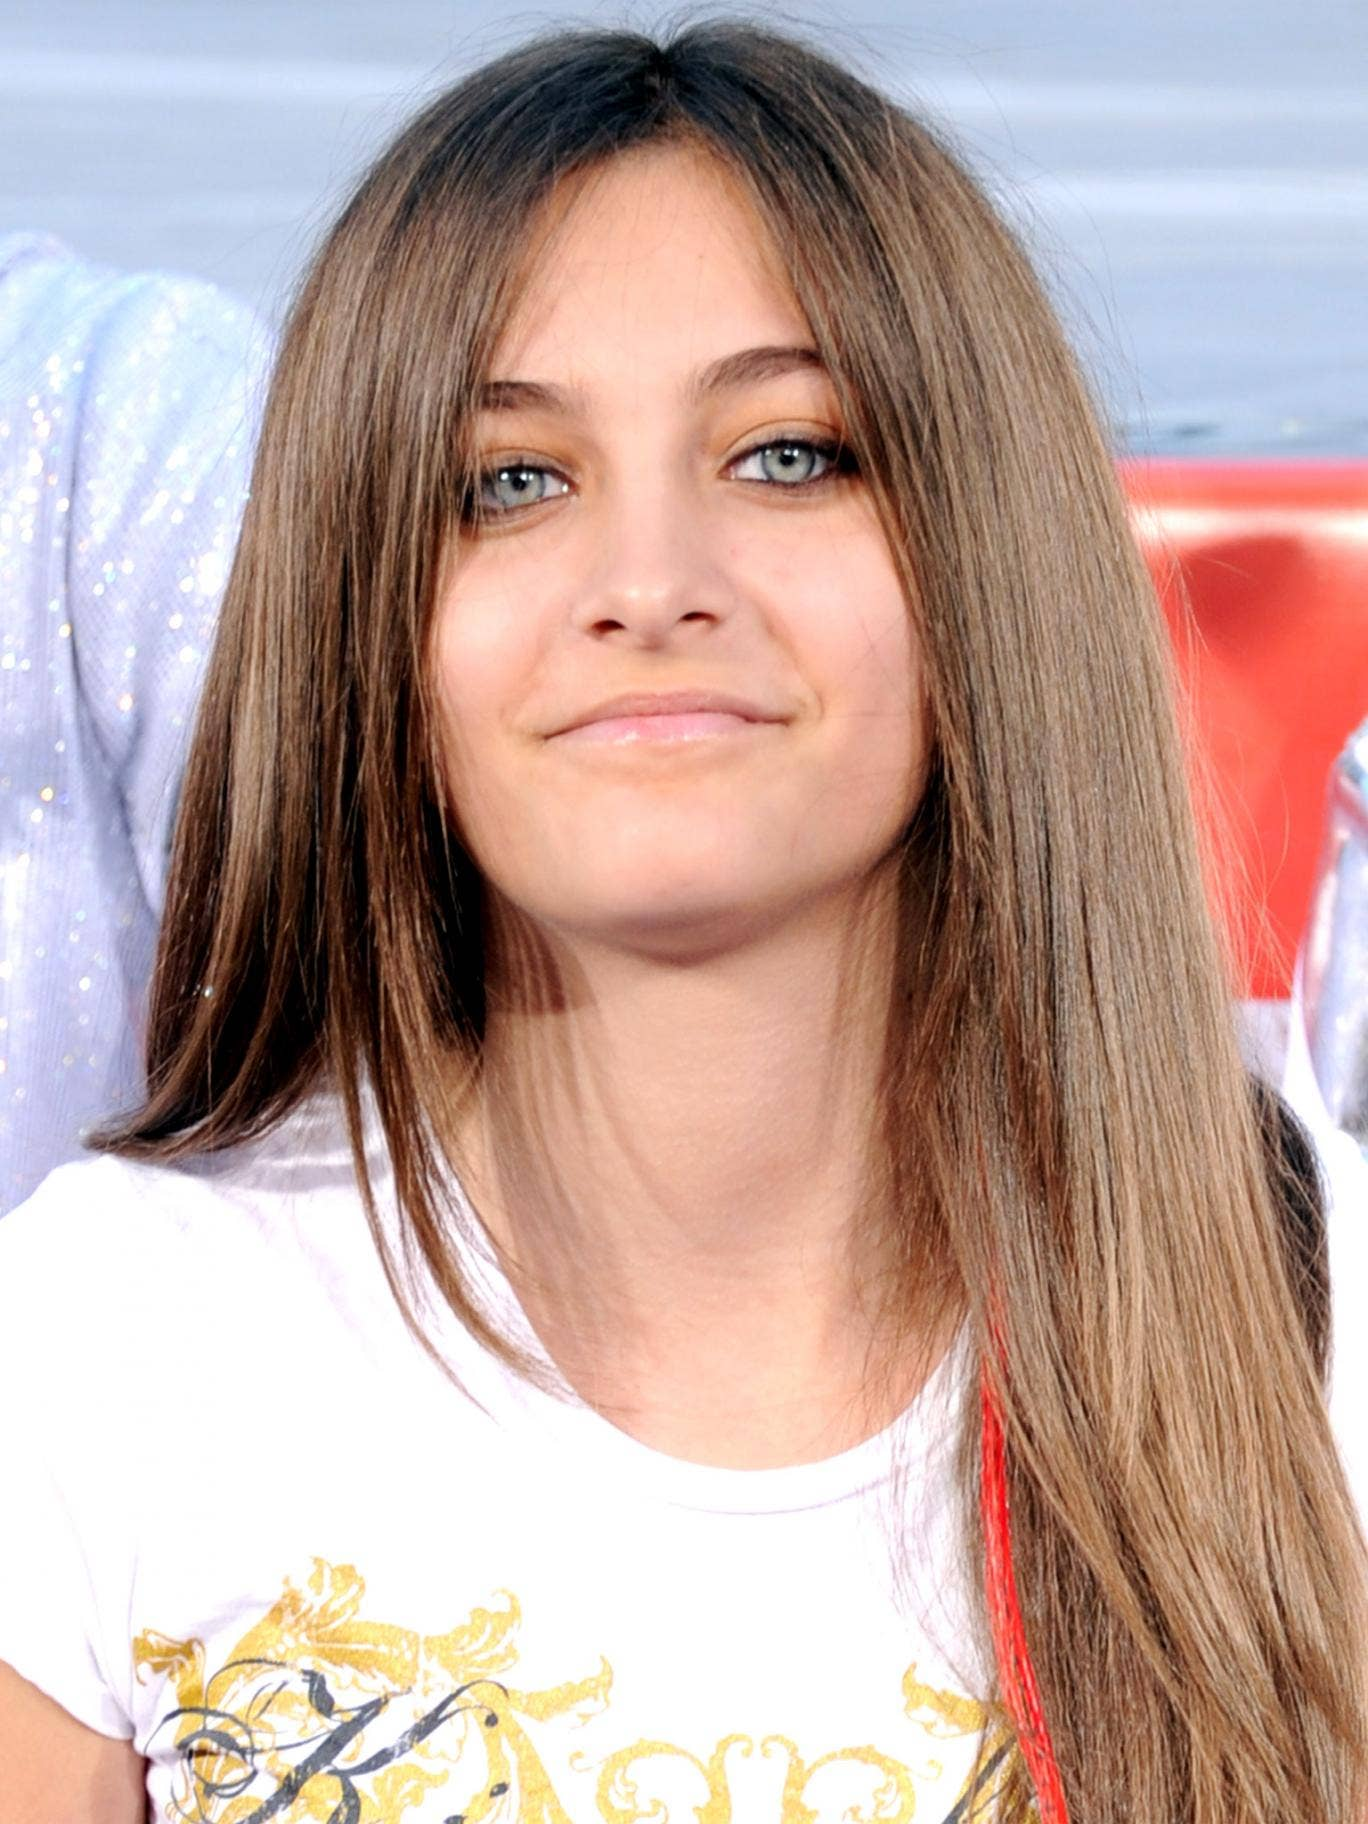 Paris Jackson is expected to make a full recovery